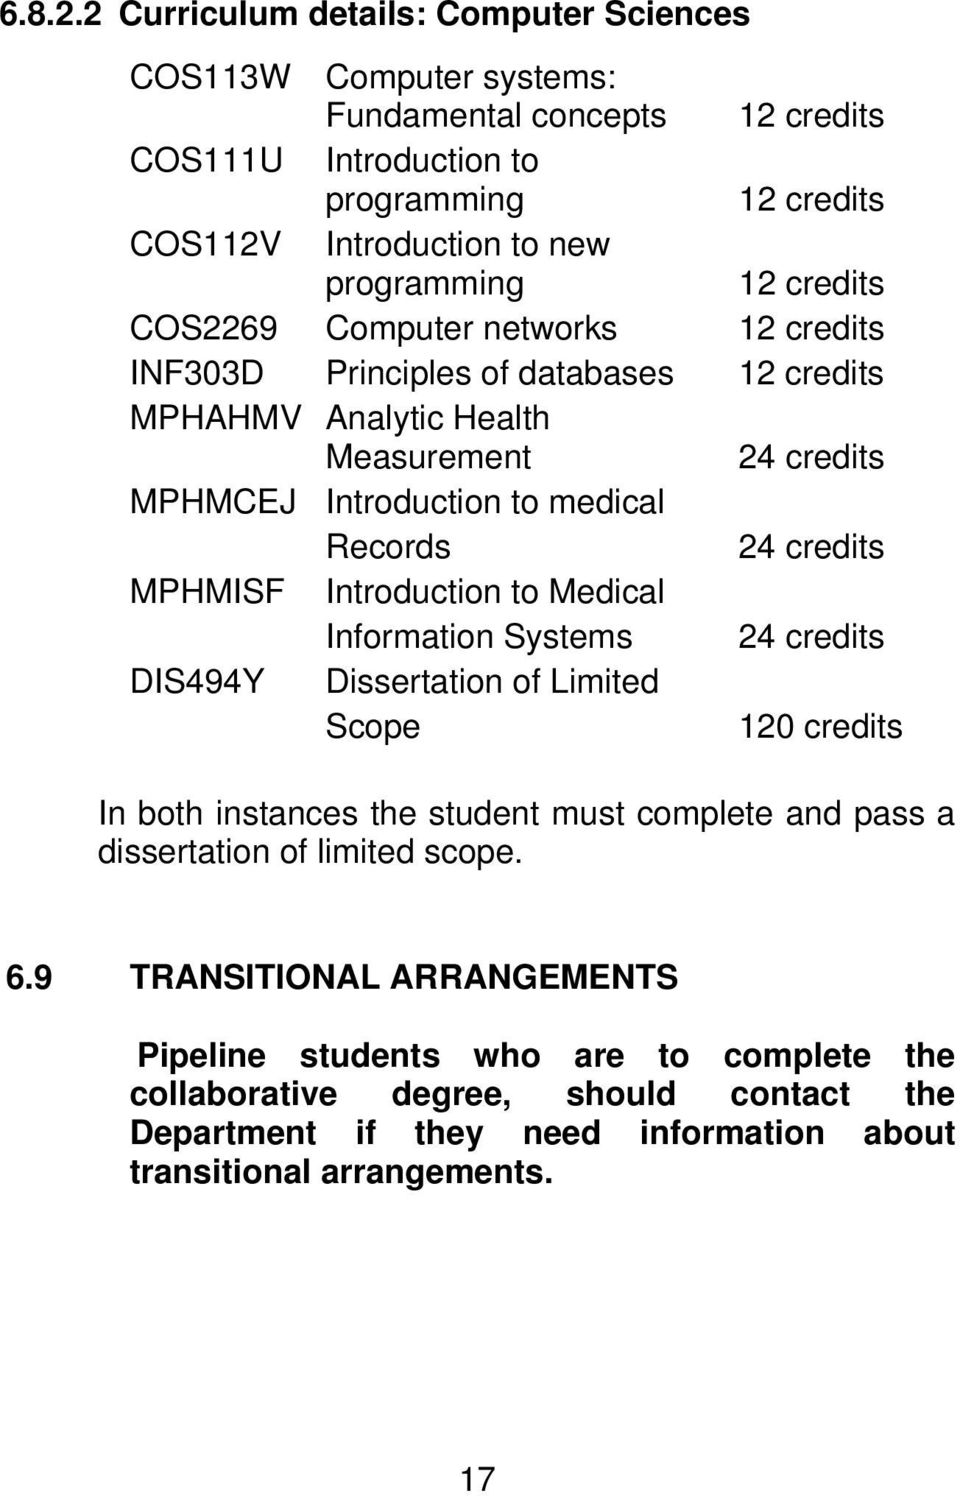 credits COS2269 Computer networks 12 credits INF303D Principles of databases 12 credits MPHAHMV Analytic Health Measurement 24 credits MPHMCEJ Introduction to medical Records 24 credits